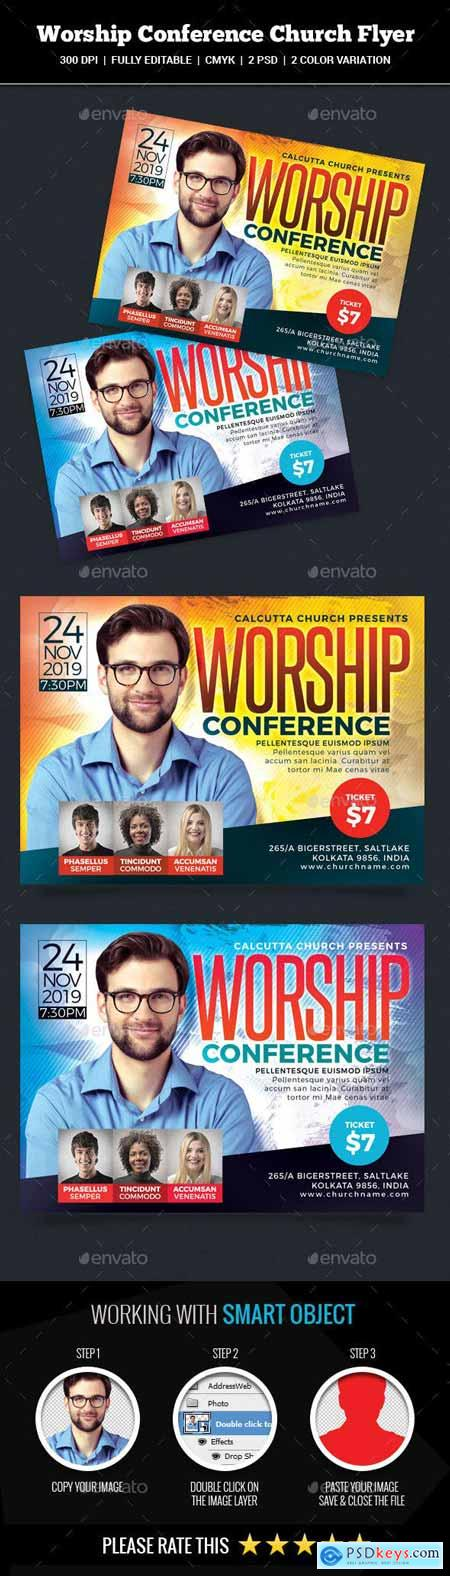 Worship Conference Church Flyer 22337102